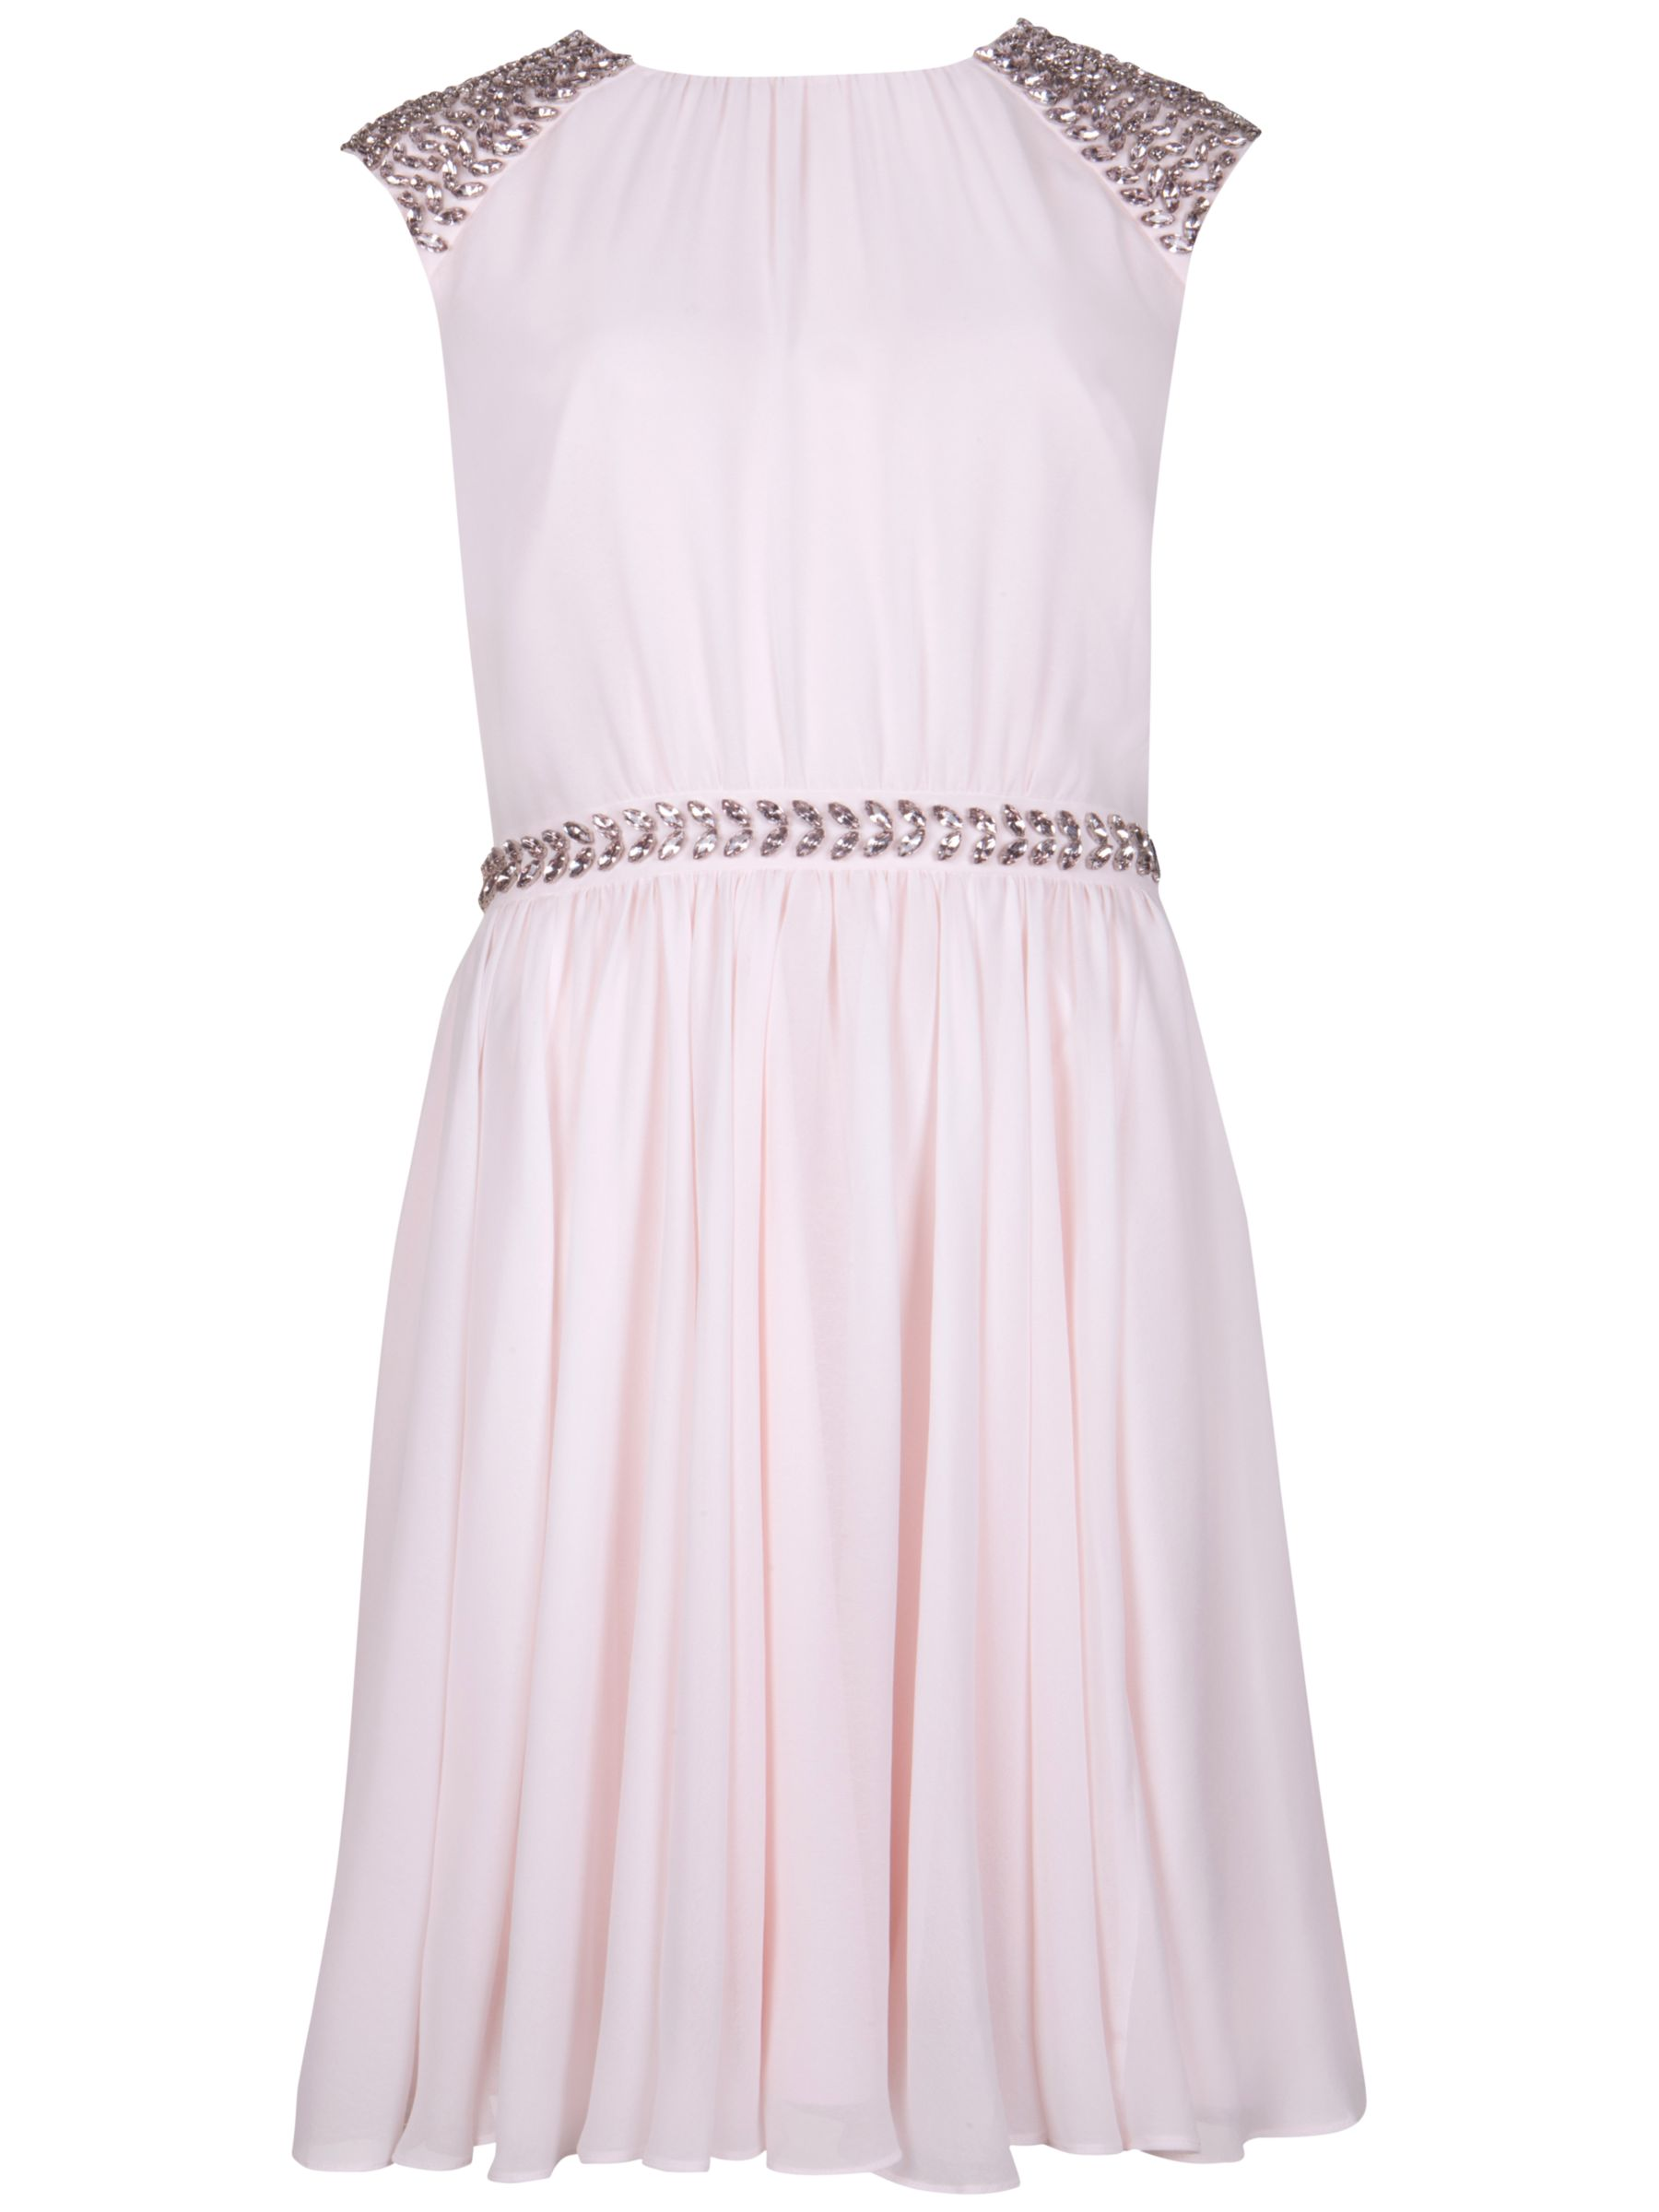 ted baker beaded detail dress shell, ted, baker, beaded, detail, dress, shell, ted baker, clearance, womenswear offers, womens dresses offers, women, womens dresses, special offers, fashion magazine, womenswear, men, brands l-z, 1643510